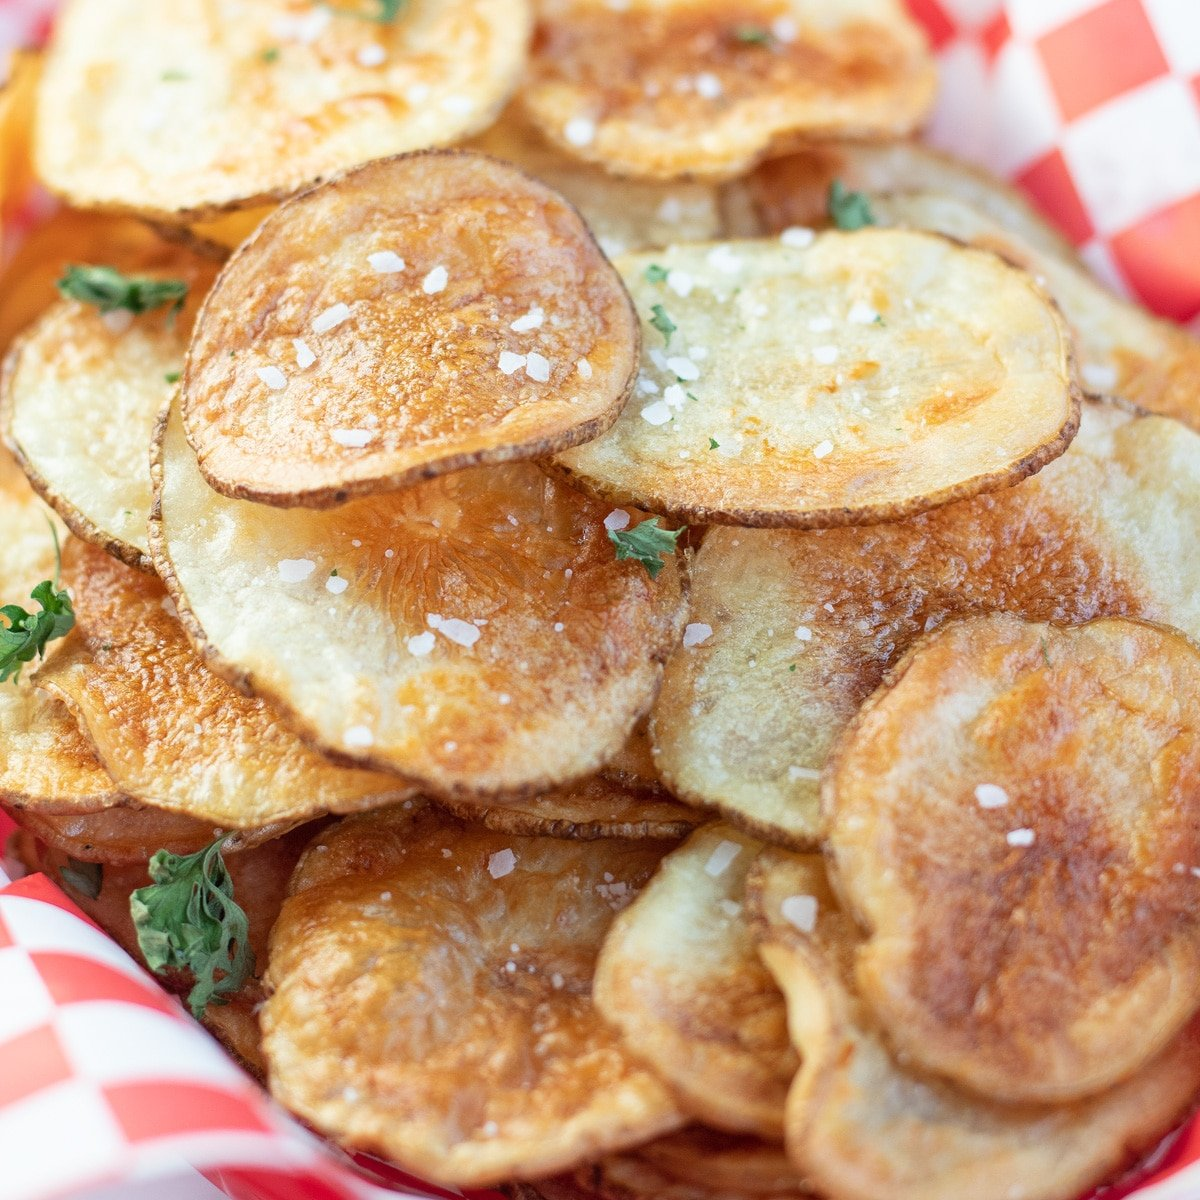 Piled air fryer potato chips in a picnic basket.